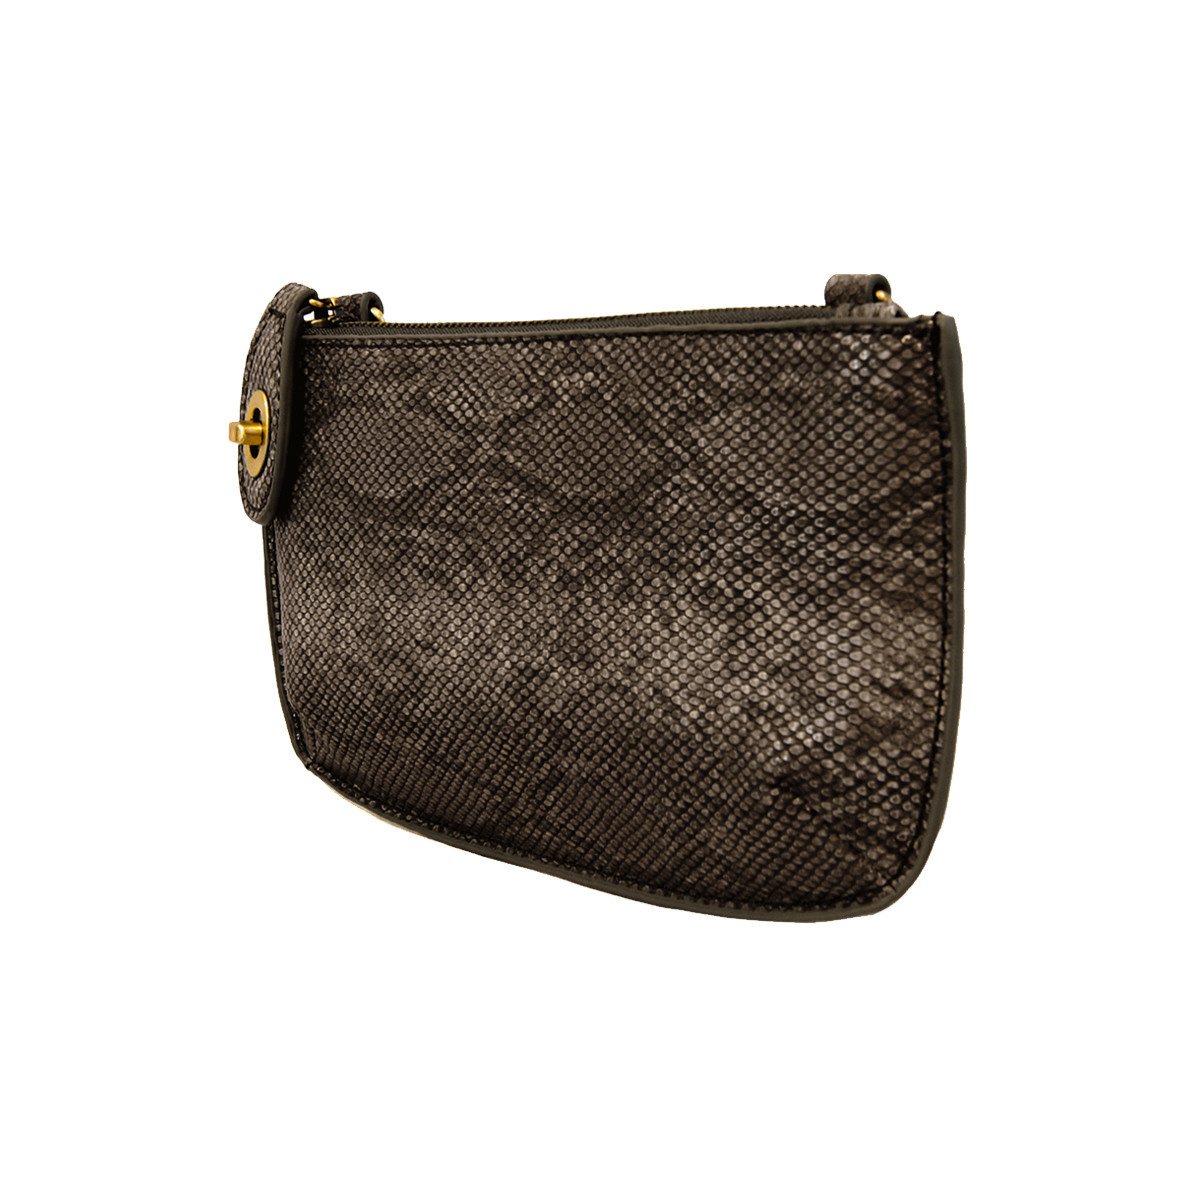 Joy Susan Joy Susan Crossbody Wristlet Clutch Black Python